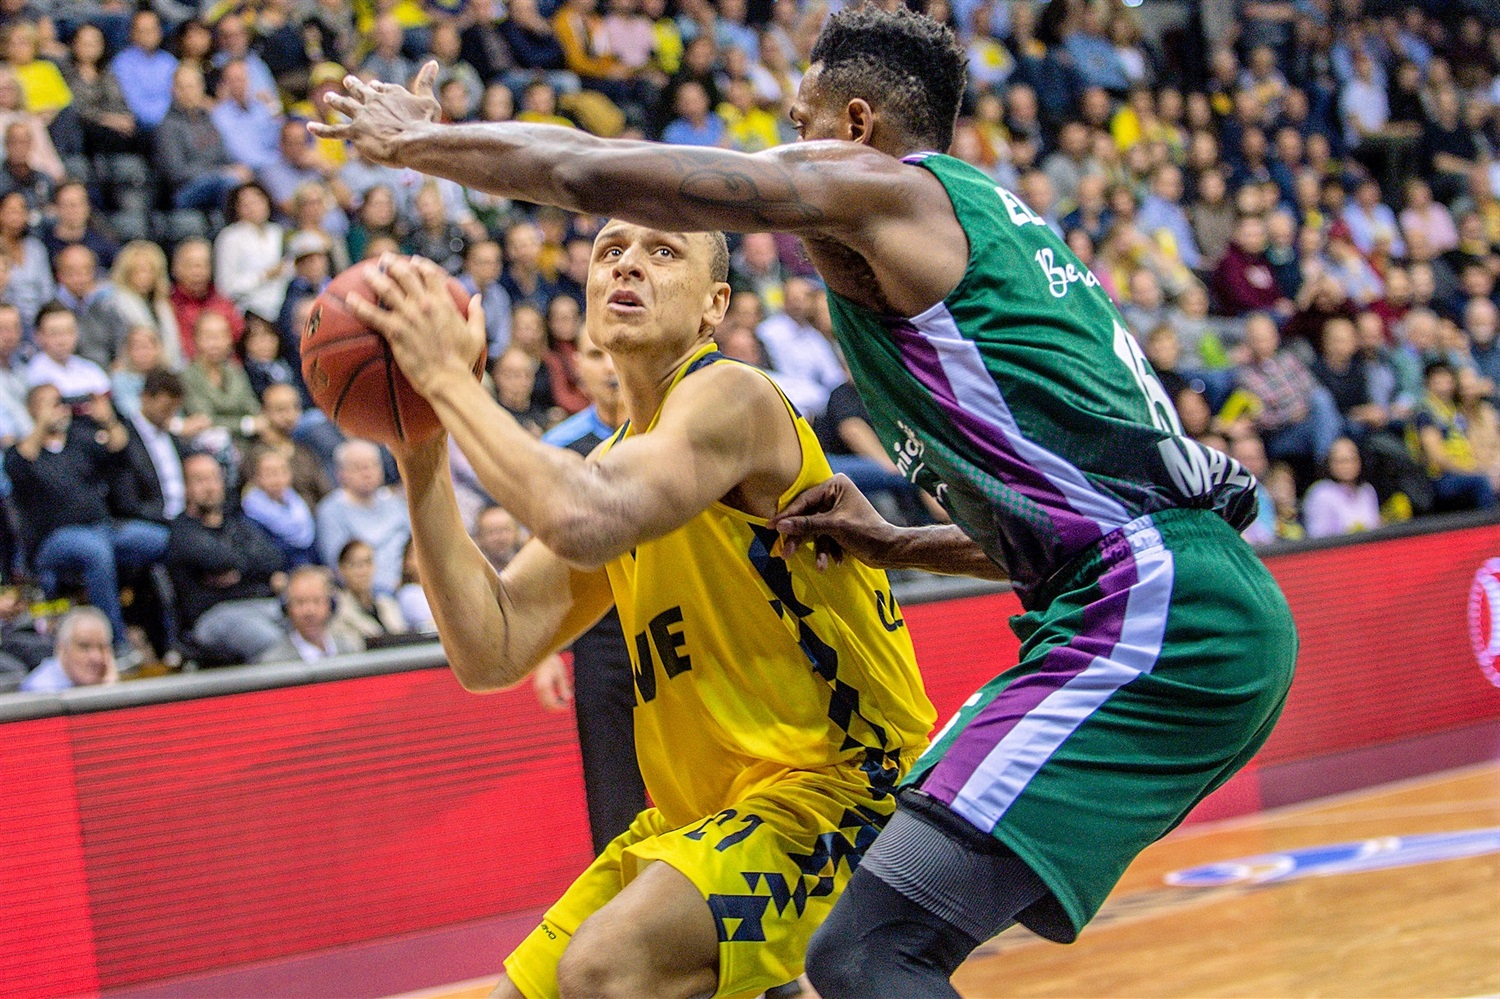 Robin Amaize - EWE Baskets Oldenburg (photo Ulf Duda - fotoduda.de) - EC19